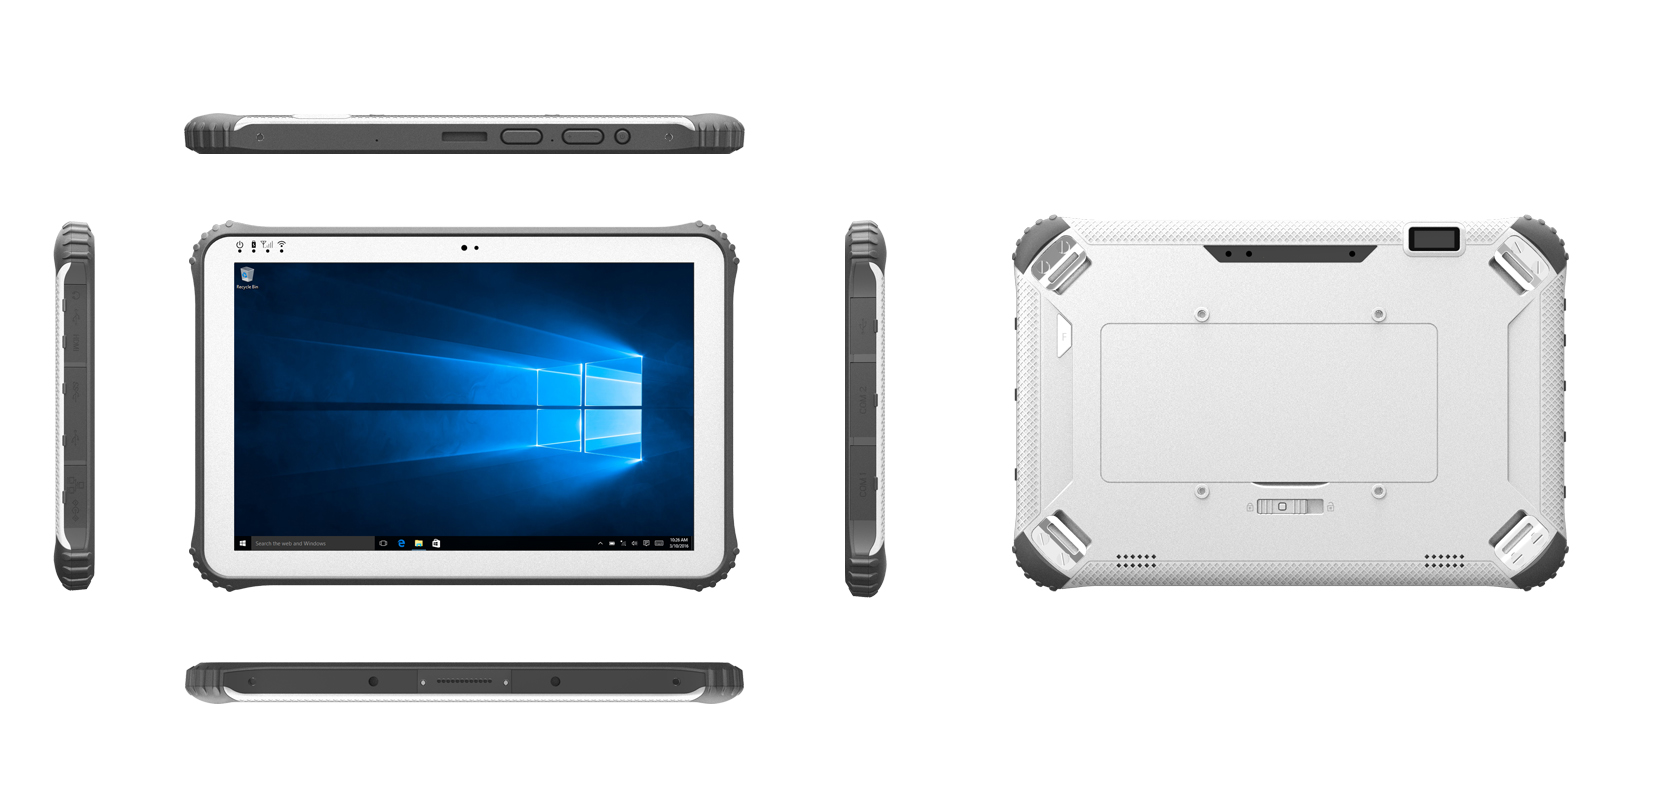 Windows 10 / Anroid 5.1 rugged tablet